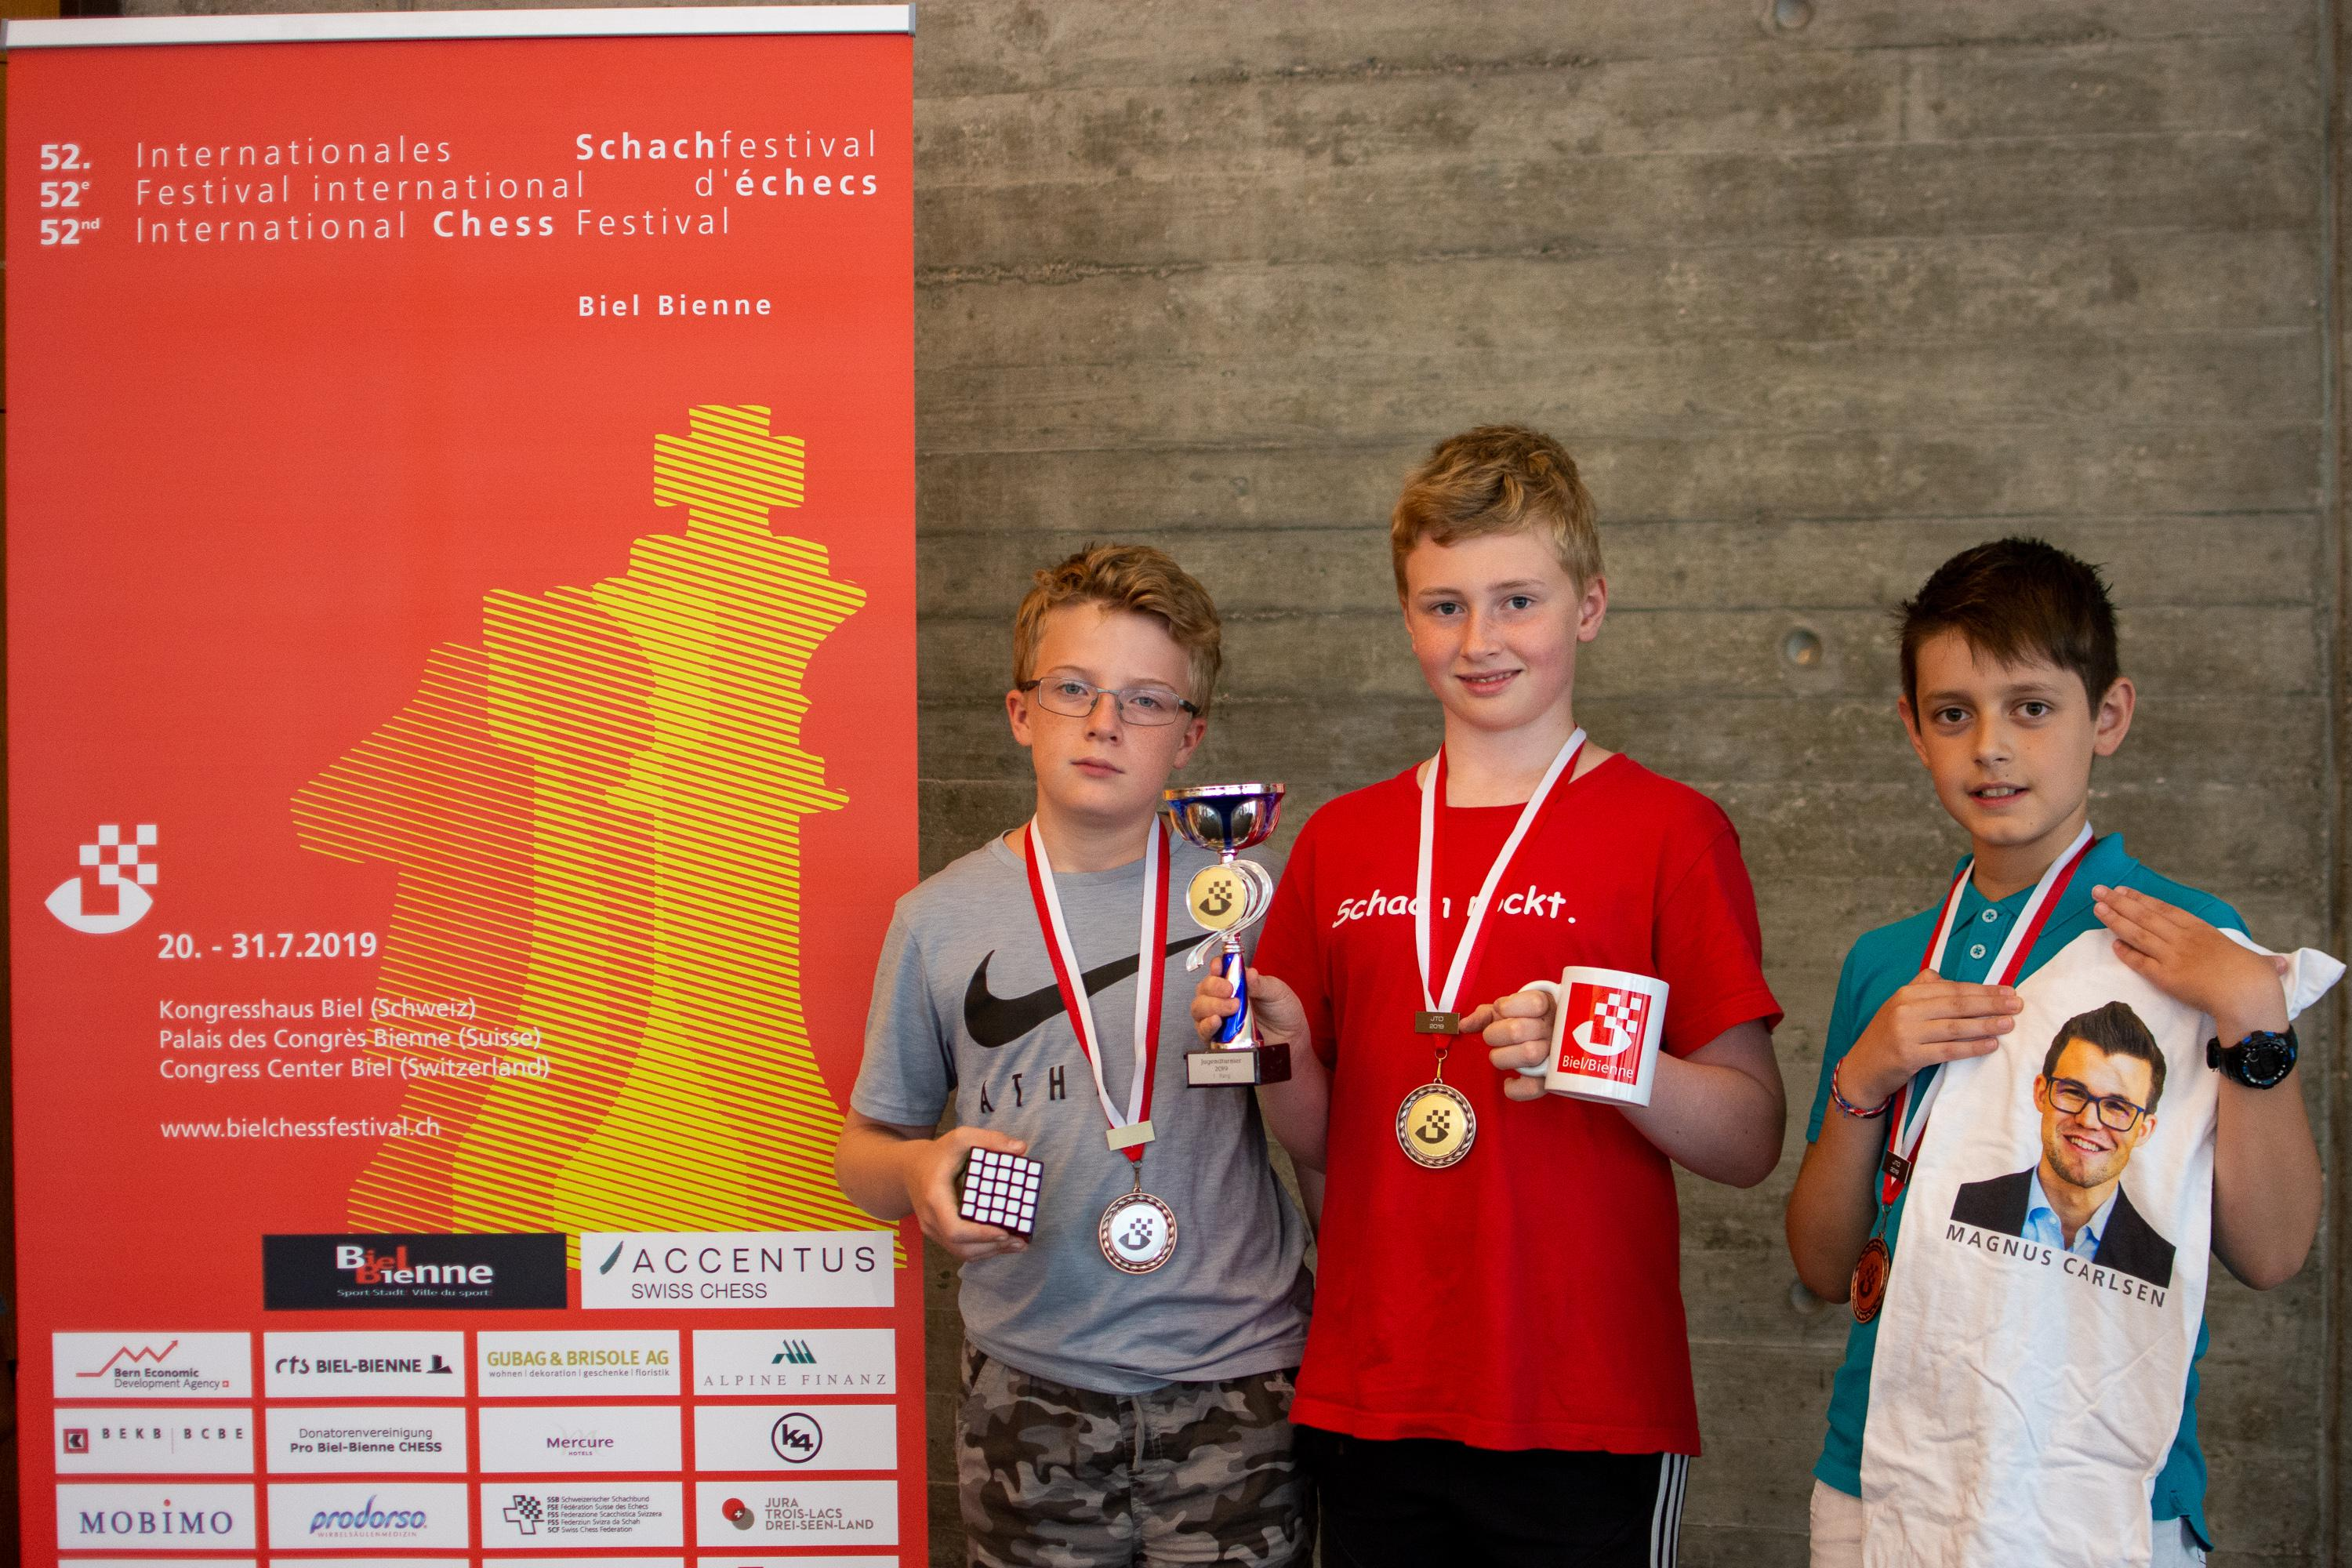 Image Podium U13- (from the left) Papaux Steve (3nd, SUI), Prieb Robert (1st, GER), Zafeiridis Athanasios (3nd, GRE)